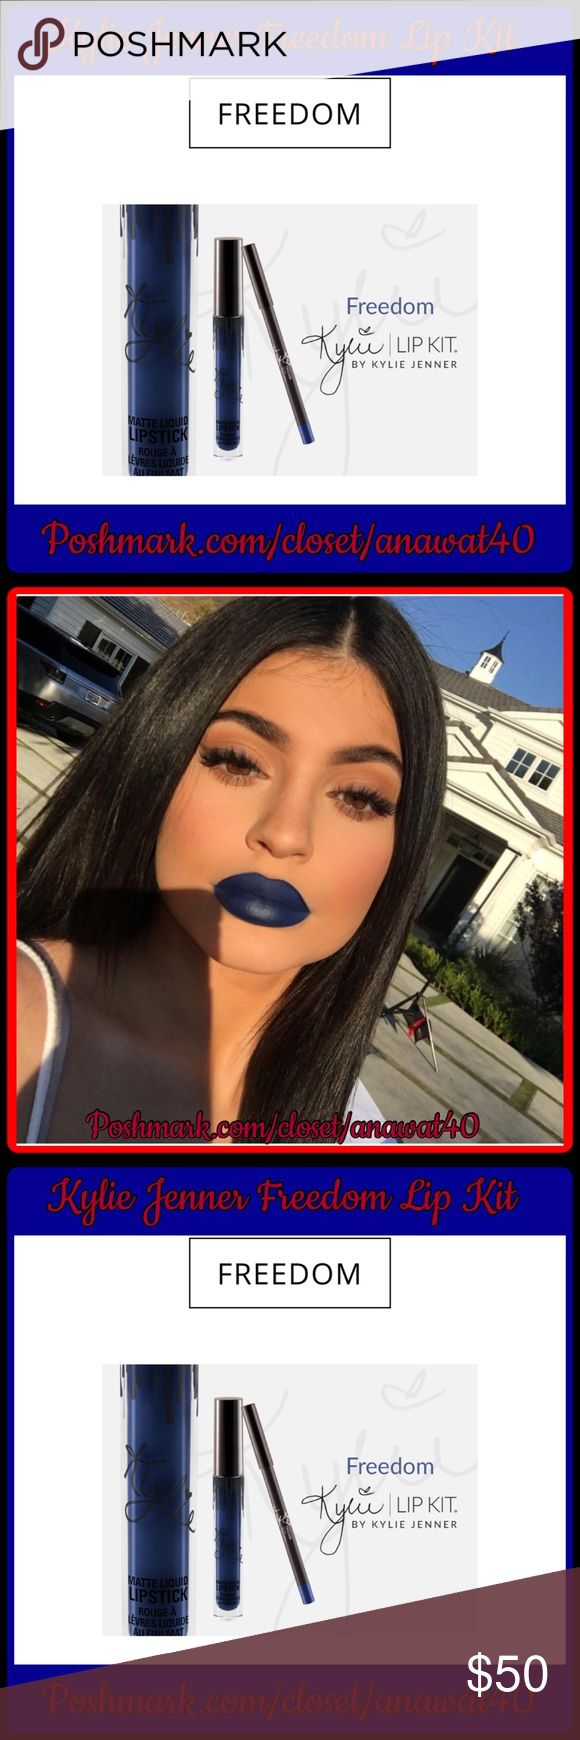 Kylie Jenner Freedom KylieLipKit by Kylie Jenner |Freedom Contains:1 Matte Liquid Lipstick(0.11 fl oz./oz. liq / 3.25 ml)and1 Pencil Lip Liner(net wt./ poids net .03 oz/ 1.0g)The #KylieLipKit is your secret weapon to create the perfect 'Kylie Lip.' Each Lip Kit comes with a Matte Liquid Lipstick and matching Lip Liner.Freedom is a rich navyblue. This ultra-long wearing lipliner has a creamytexture that glides across the lips for a very easy and comfortable application. Kylie…